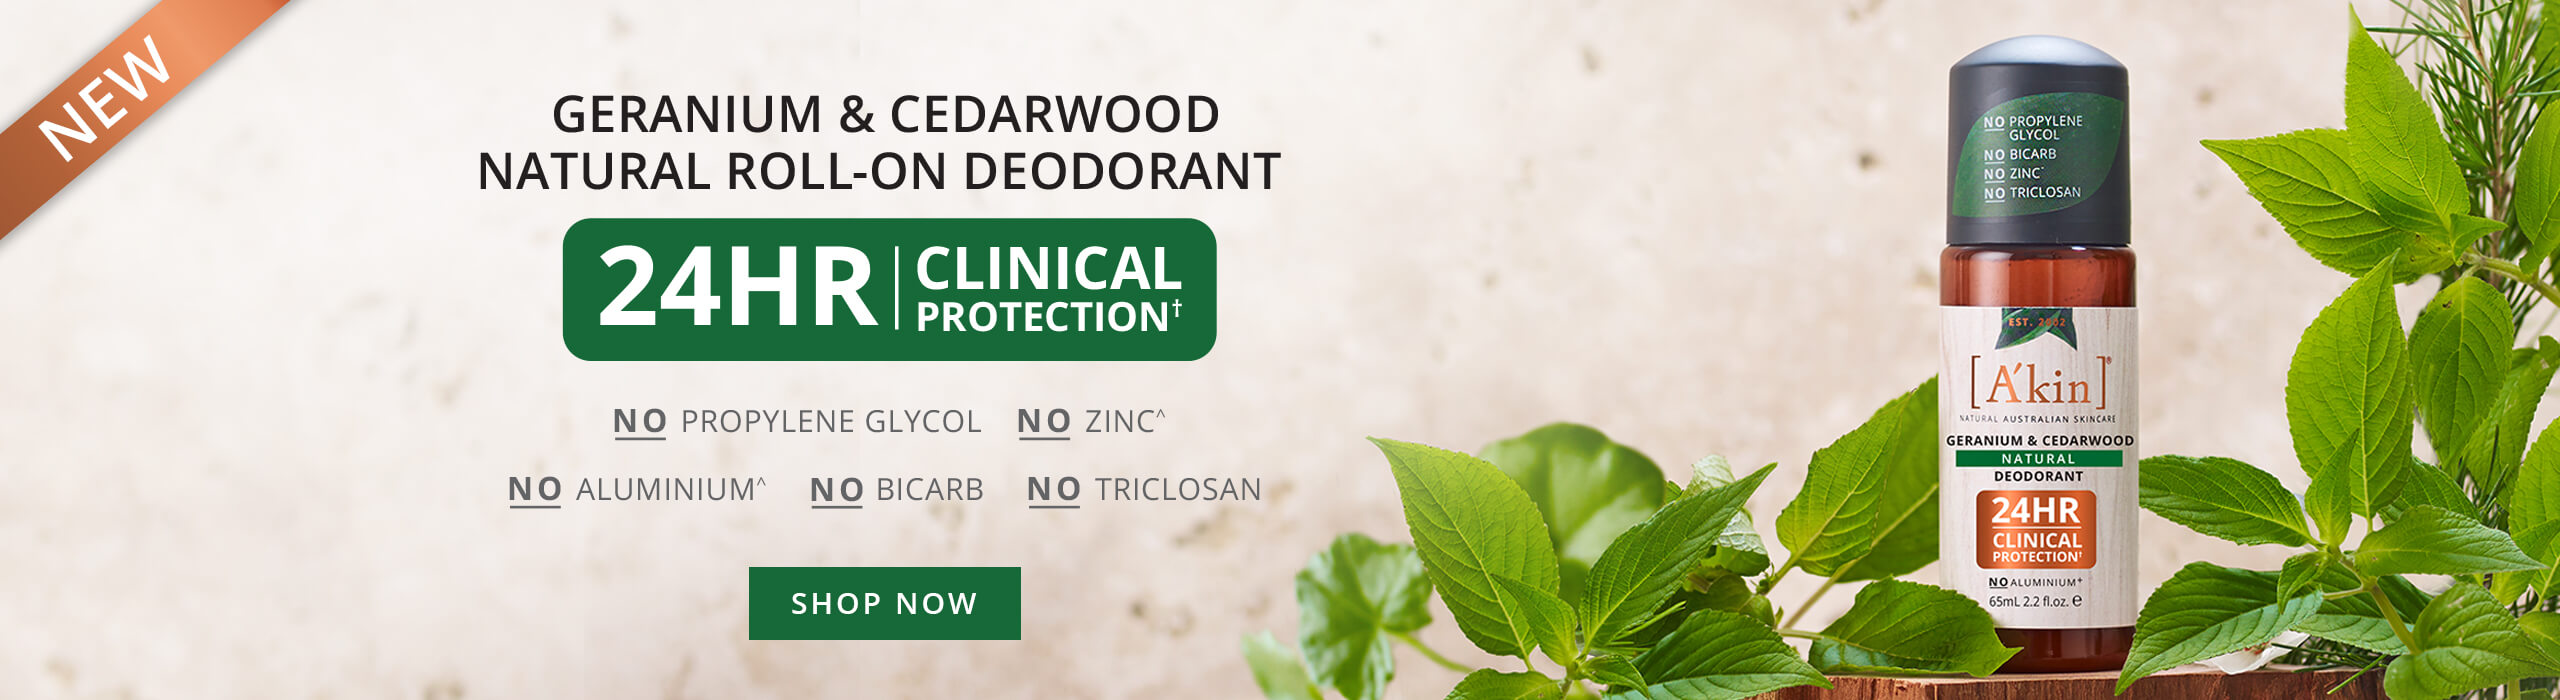 Geranium & Cedarwood Natural Roll-On Deodorant. 24 Hour Clinical Protection. No Propylene Glycol. No Zinc. No Aluminium. No Bicarb. No Triclosan.